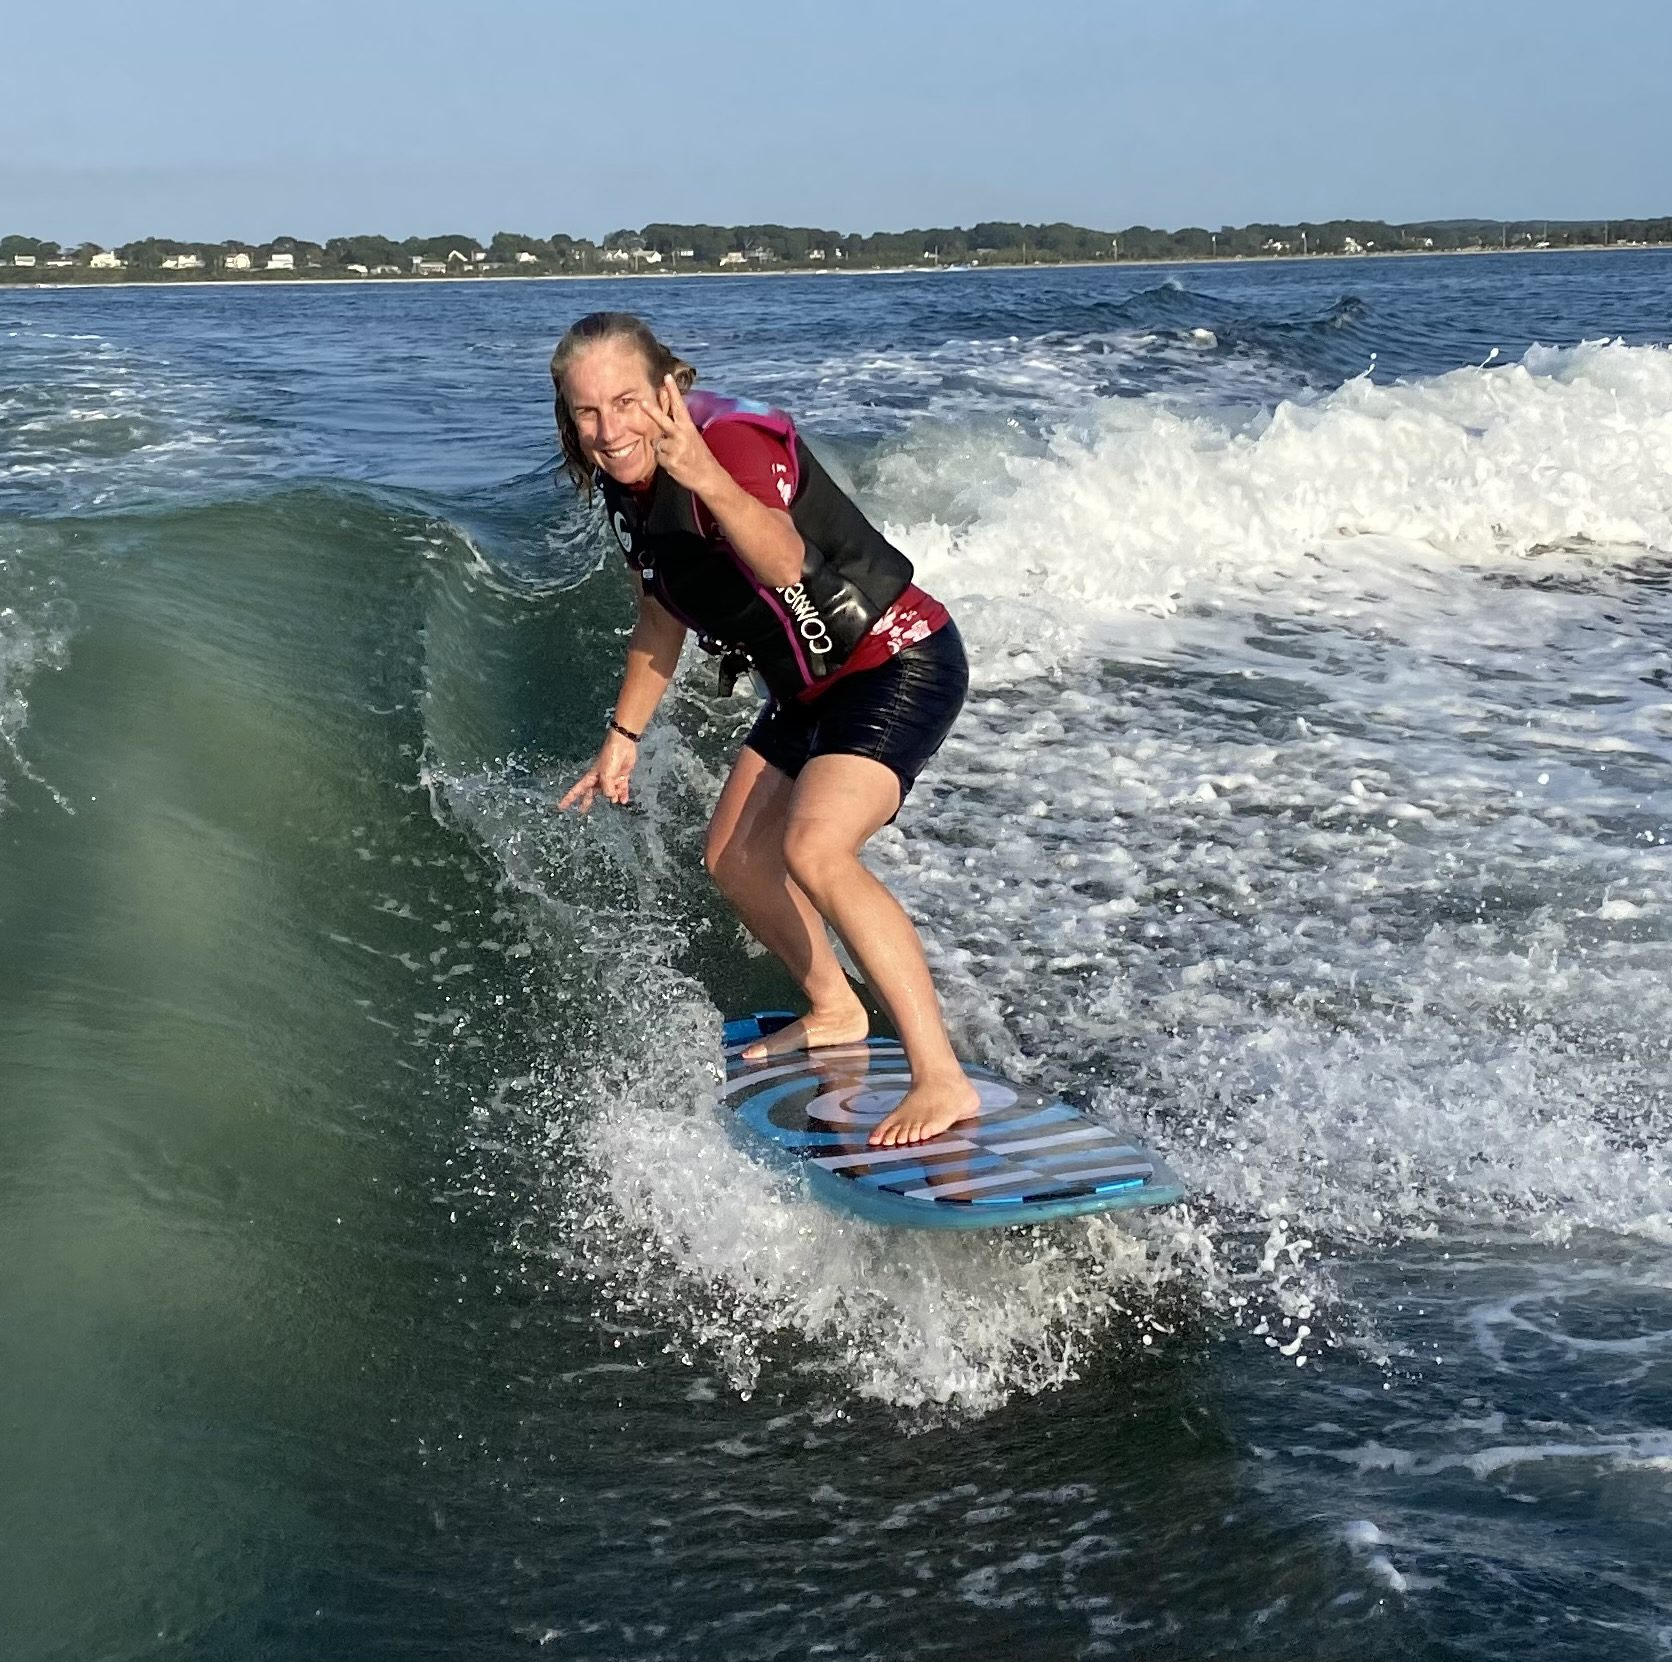 Leigh Ernst Friestedt wake surfing in the Hamptons with a blue surfboard and red surf guard and life jacket - smiling and two fingers raised and ocean in background © Equity IX - SportsOgram